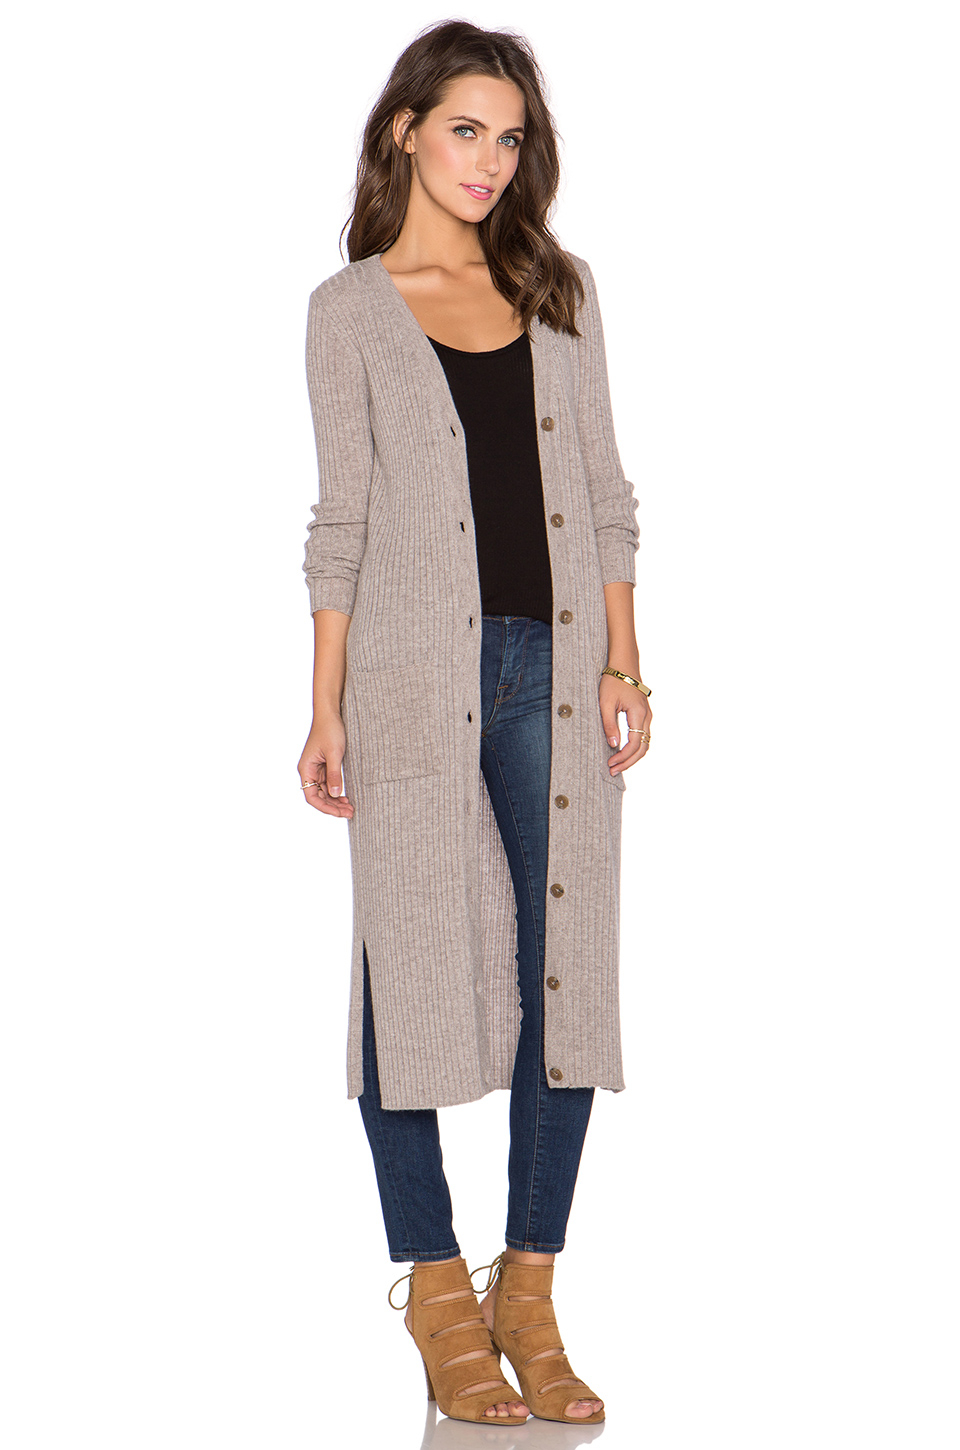 Autumn cashmere Ribbed Maxi Cardigan in Gray | Lyst